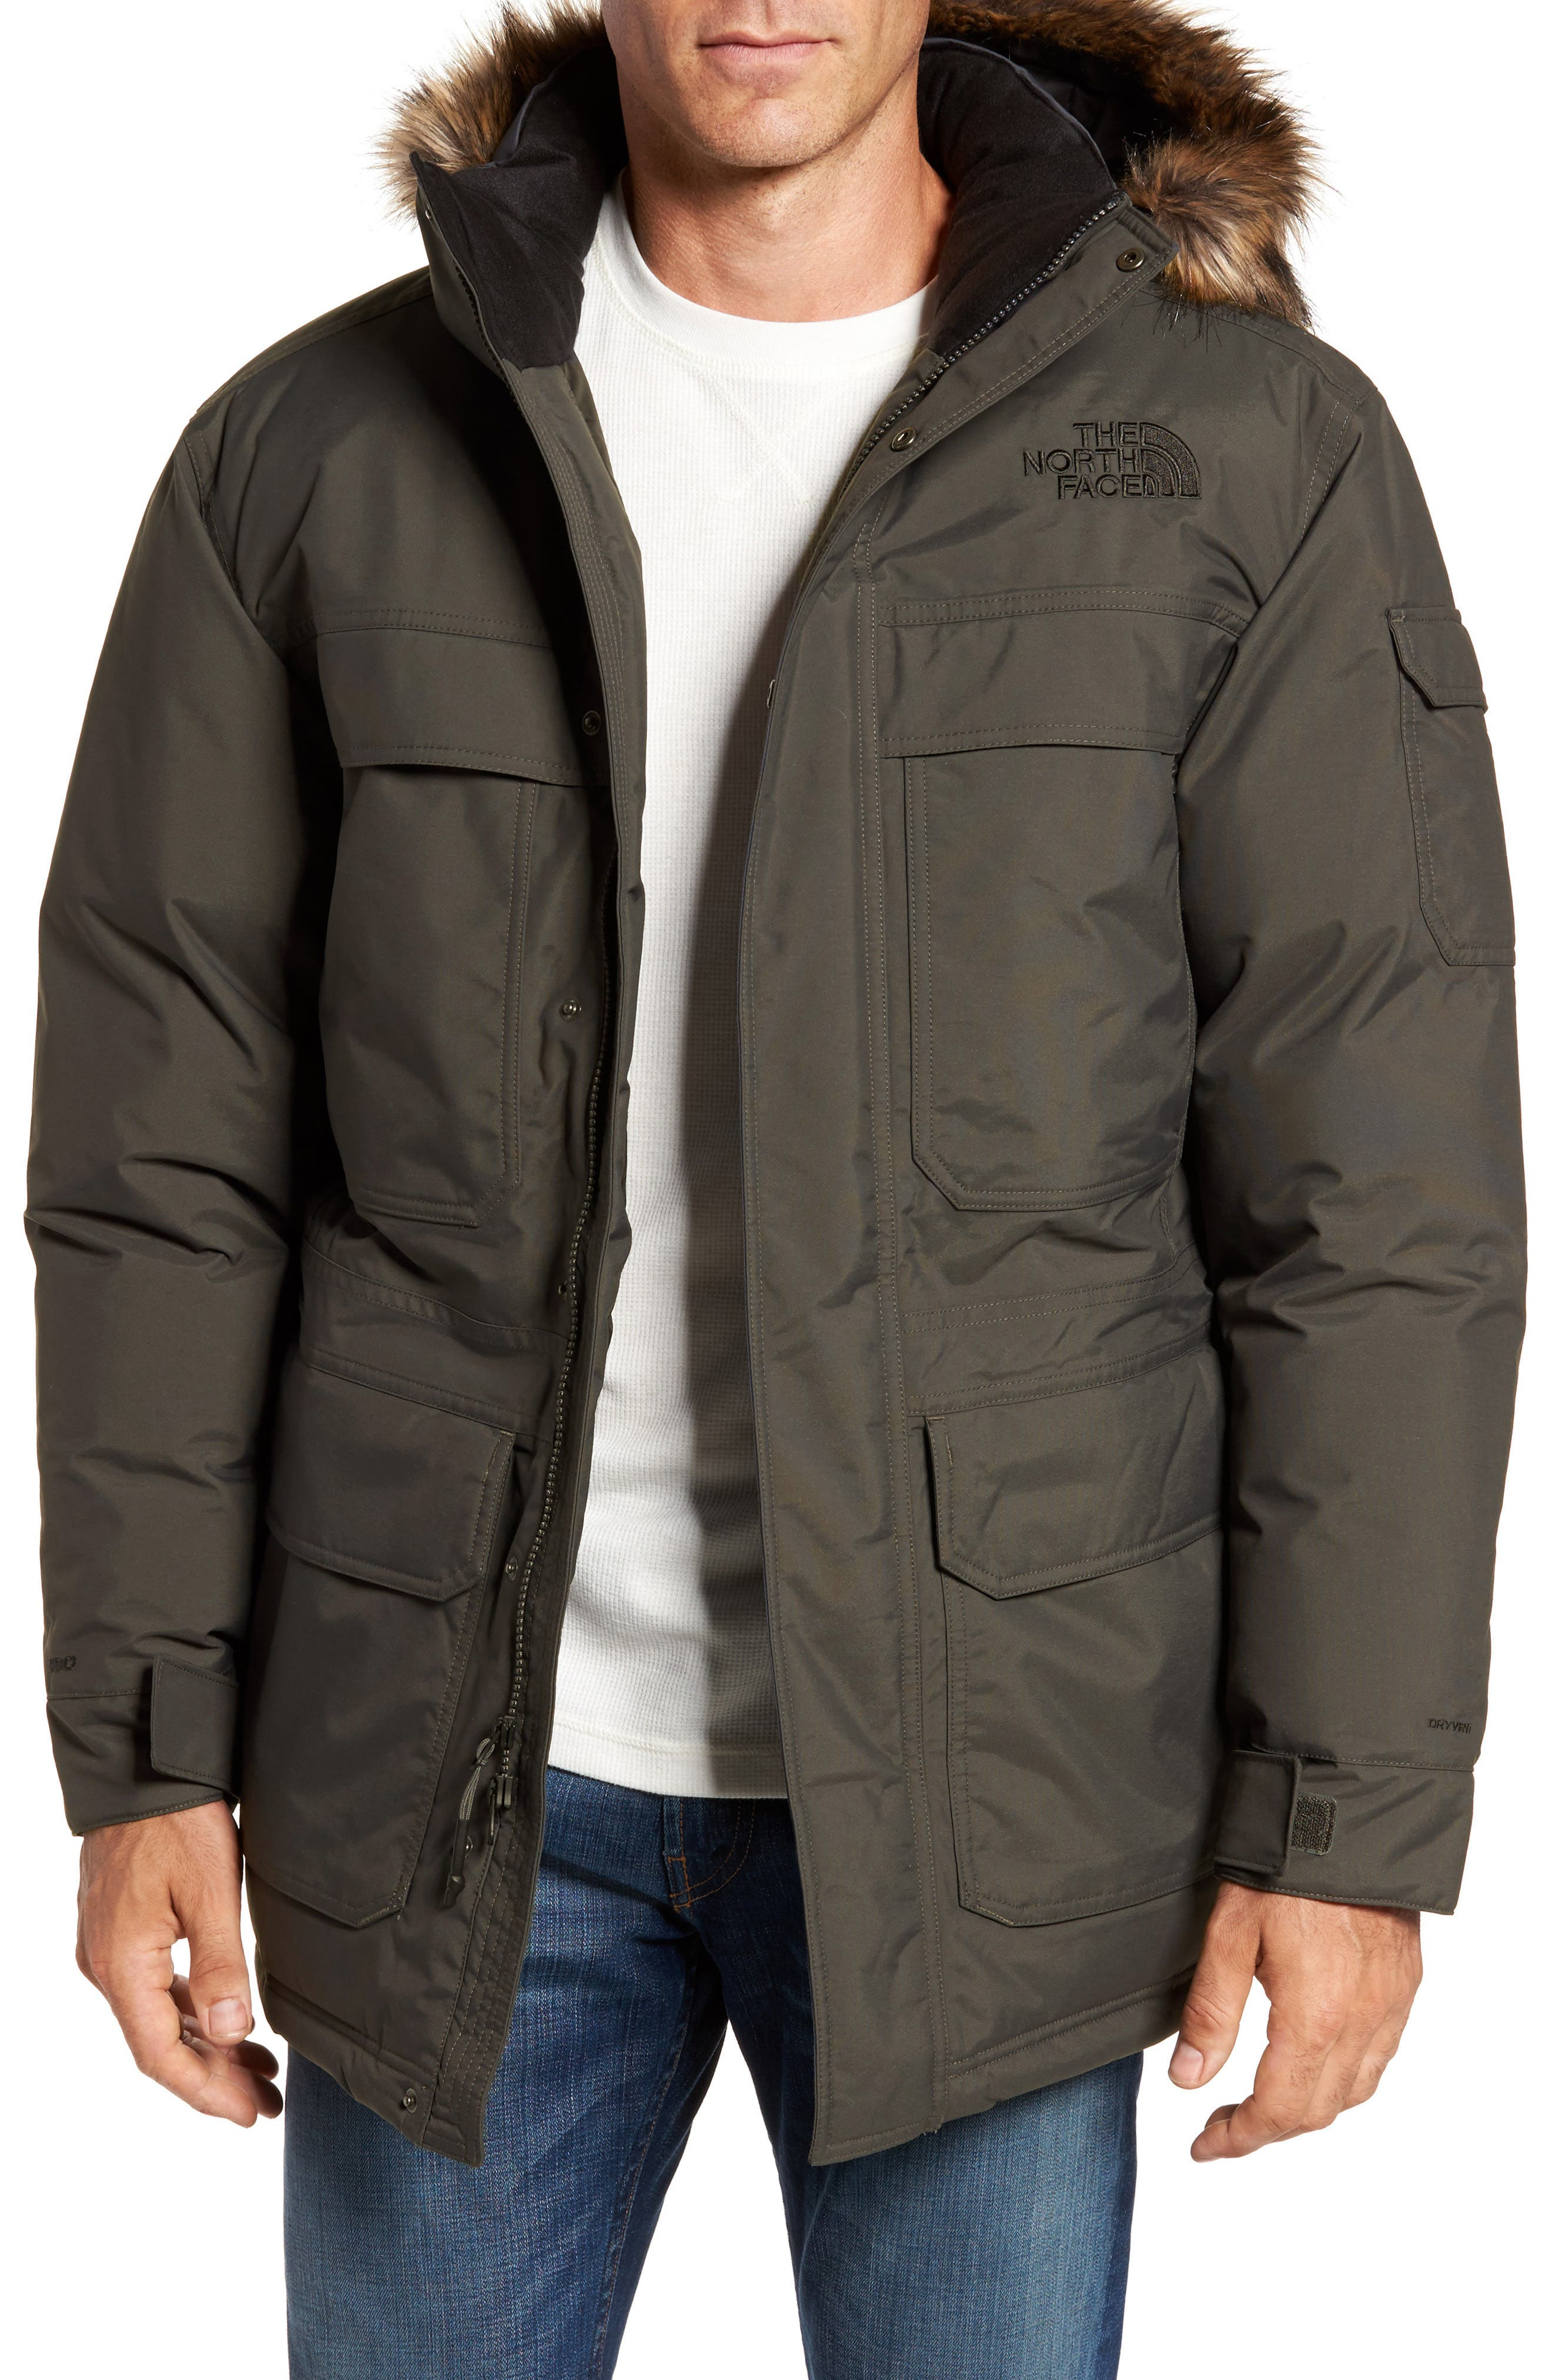 McMurdo III Waterproof Parka,                         Main,                         color, New Taupe Green